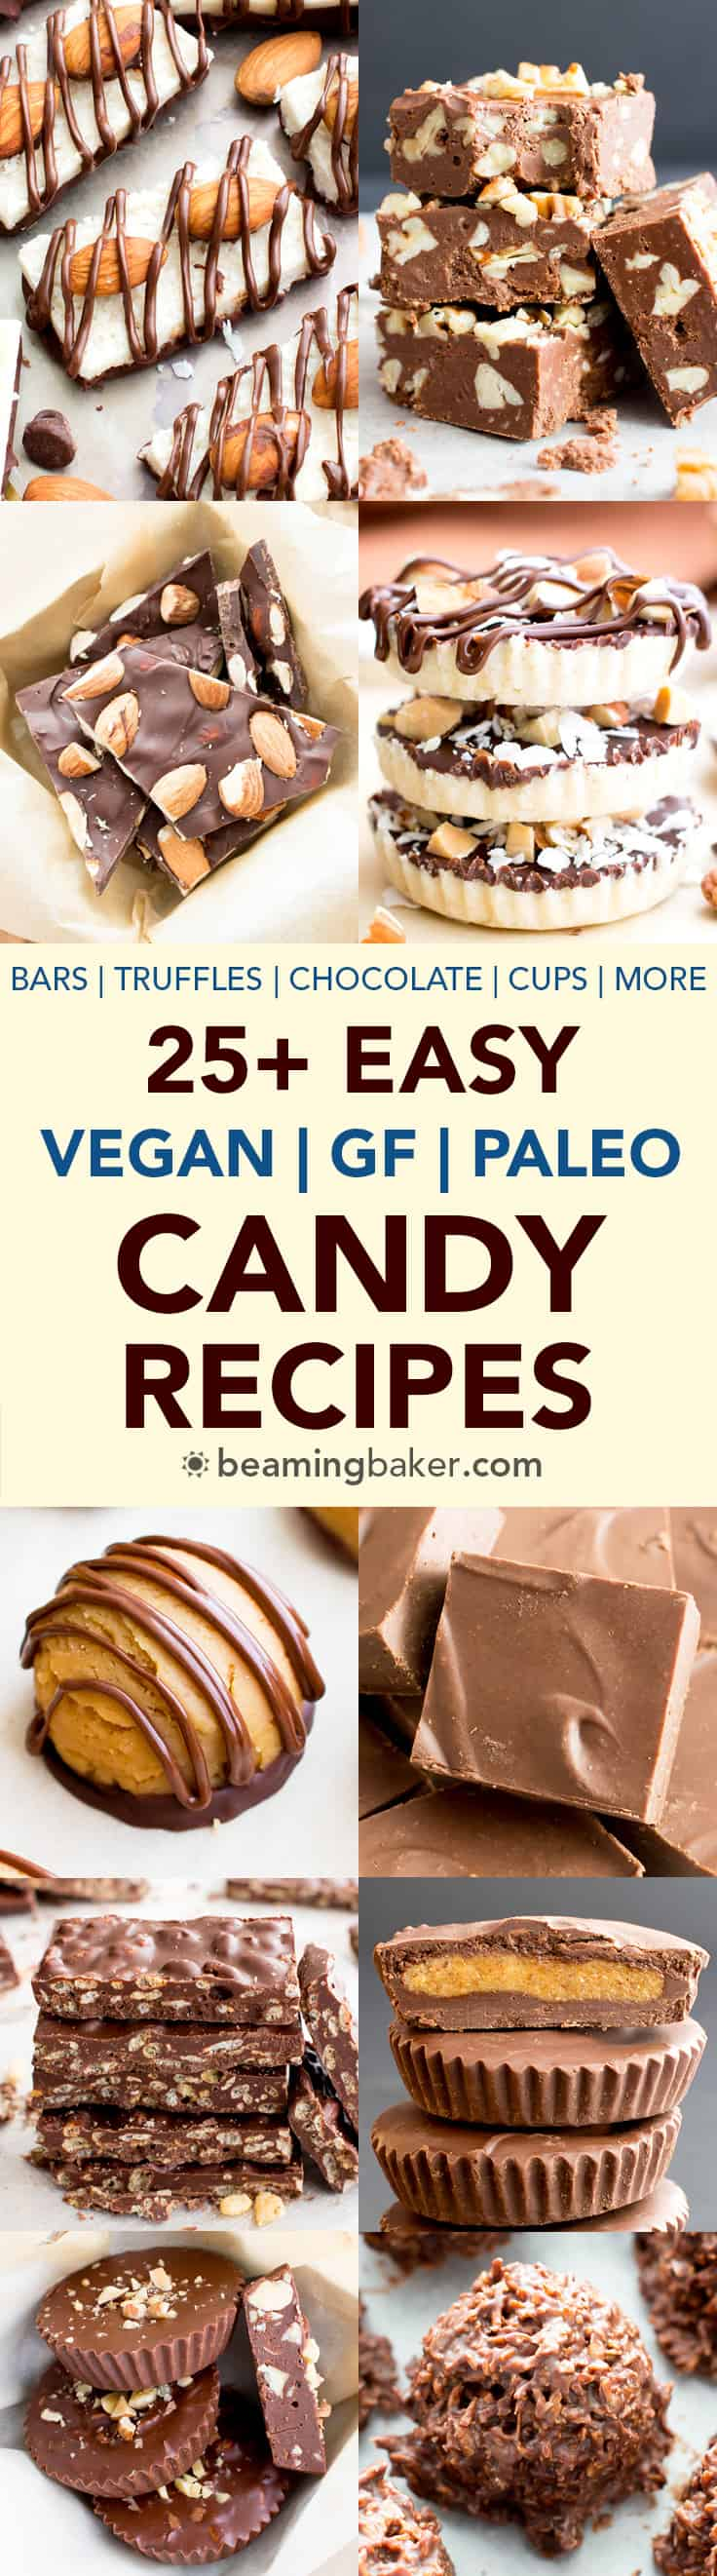 25+ Easy Gluten-Free Vegan Candy Recipes (V, GF): A super sweet collection of seriously easy homemade candy recipes to satisfy sweets lovers everywhere! #Vegan #GlutenFree #DairyFree #Paleo #Candy #Dessert | Recipe Roundup on BeamingBaker.com